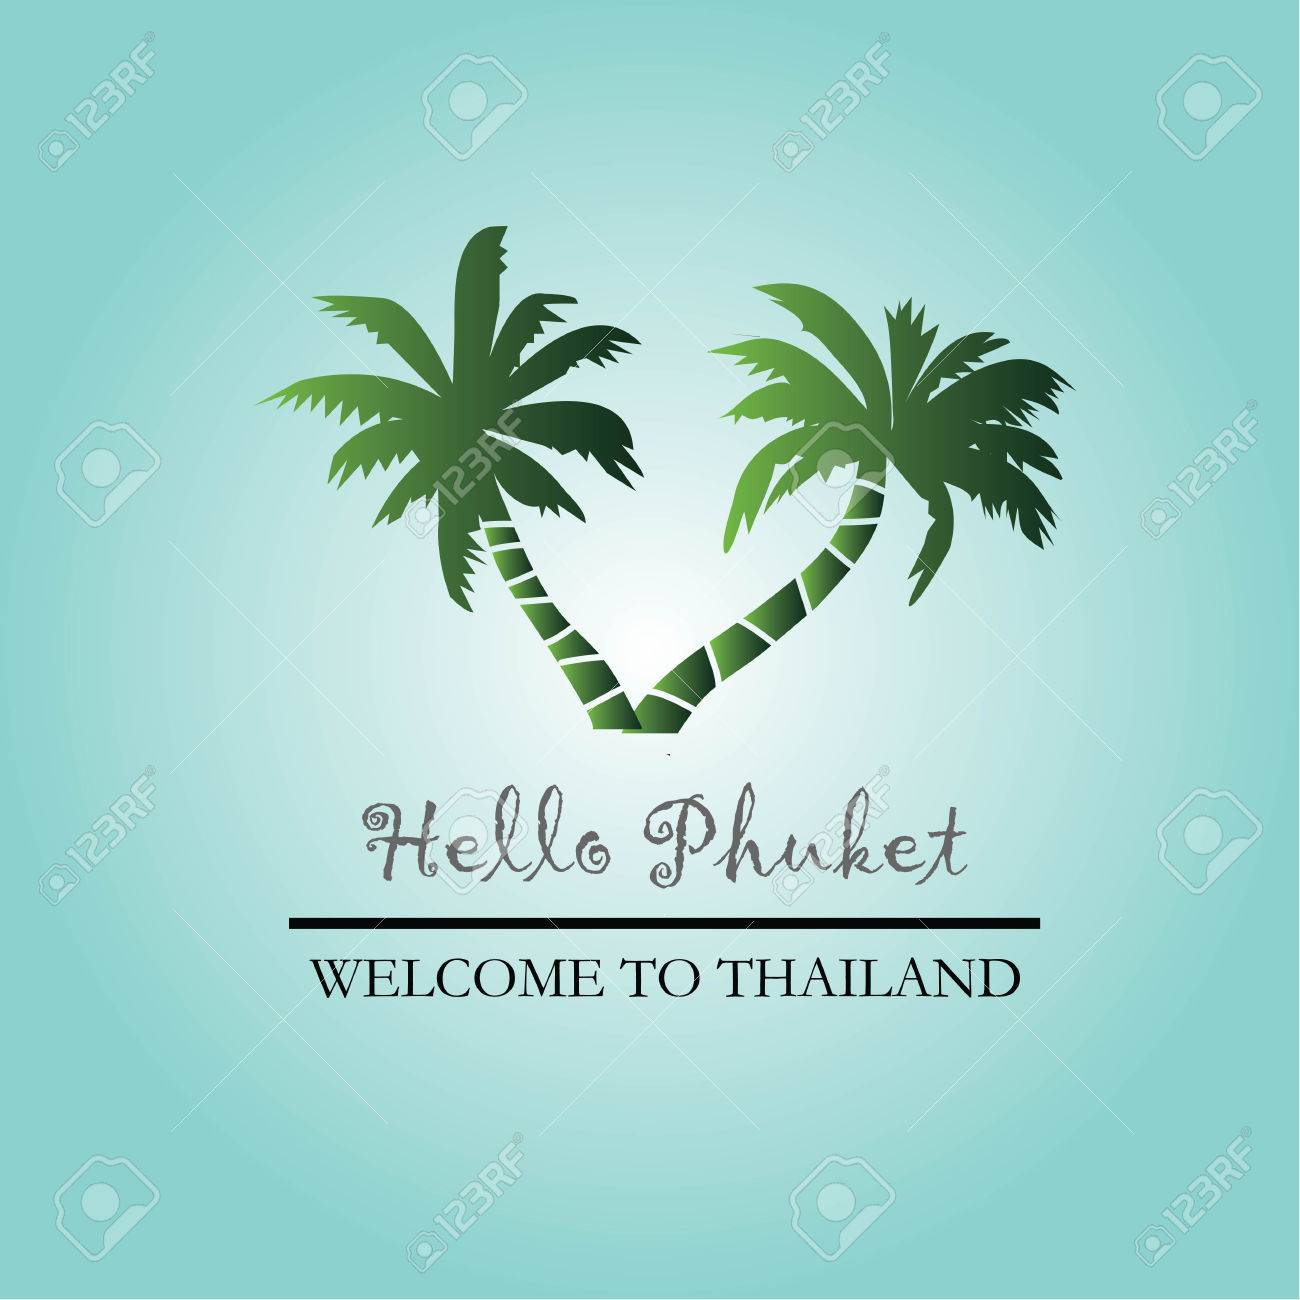 template of travel phuket thailand with coconut tree vector